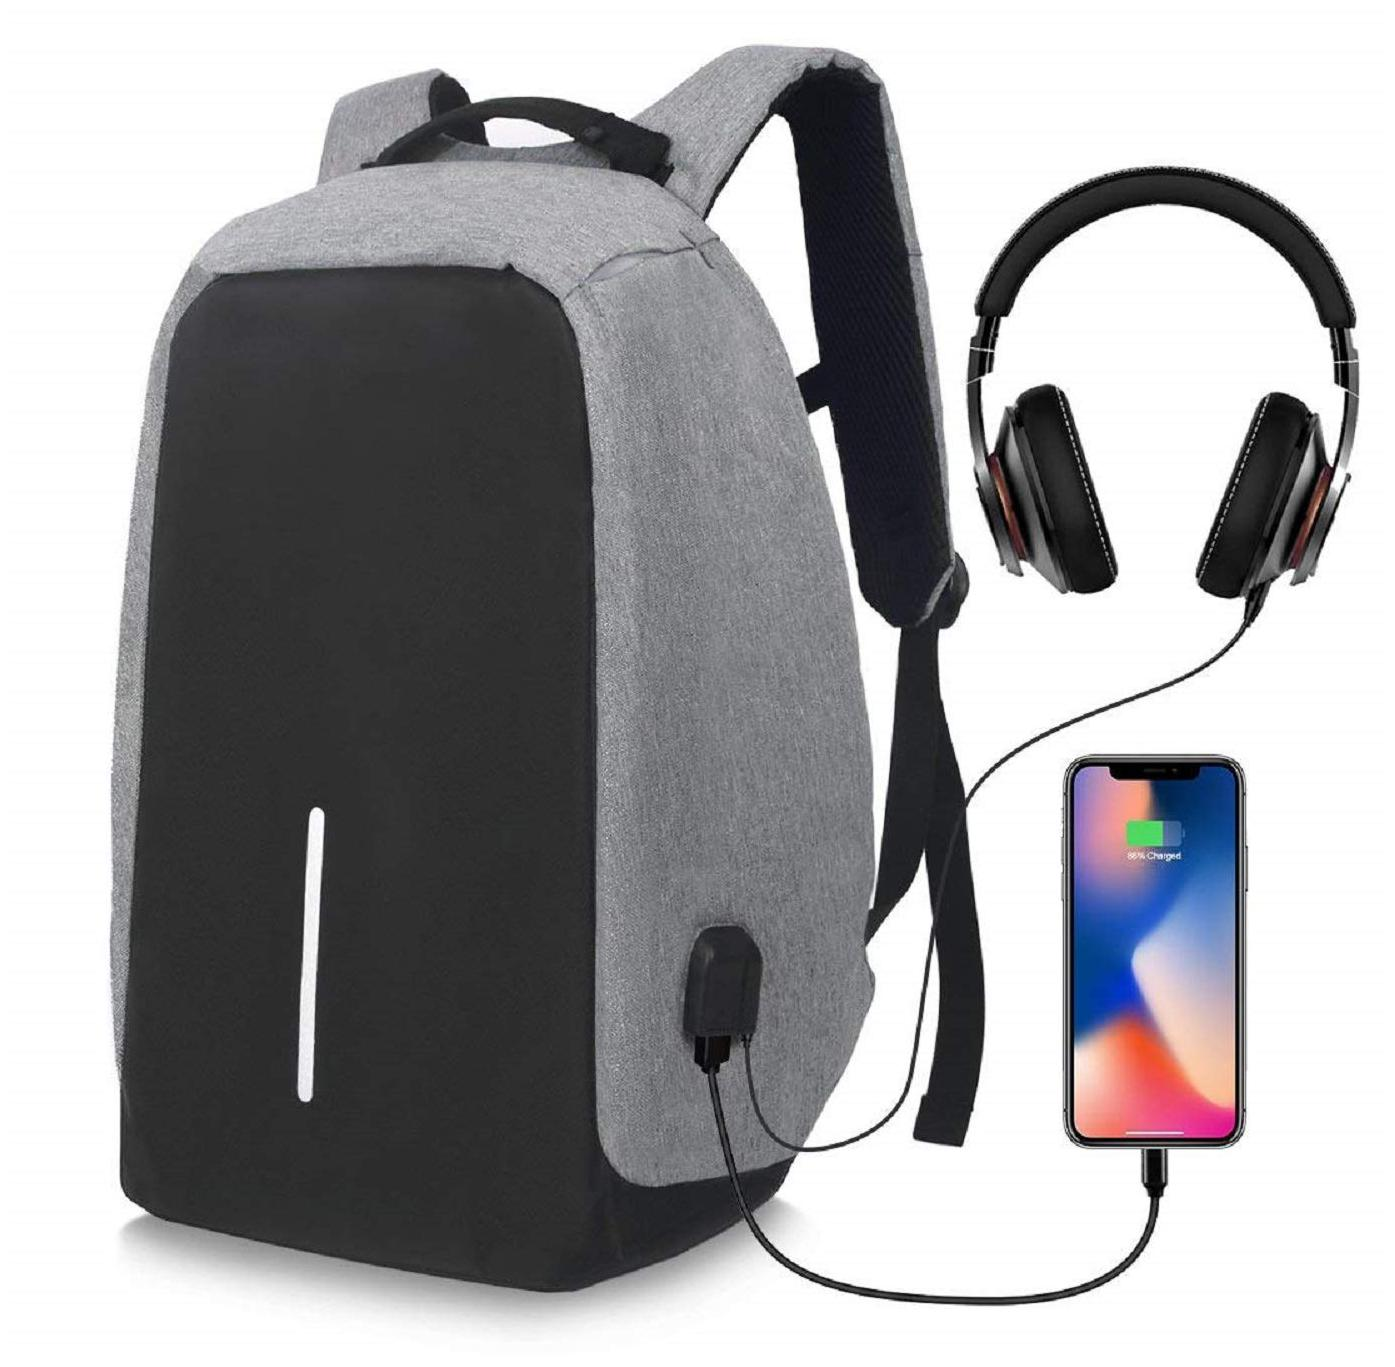 UnTech Anti-Theft B2 Laptop Backpack with USB Charging Port Headphone Port Fit 14 Inch Laptop Water Resistant with a Hidden and Interlayered Zipper